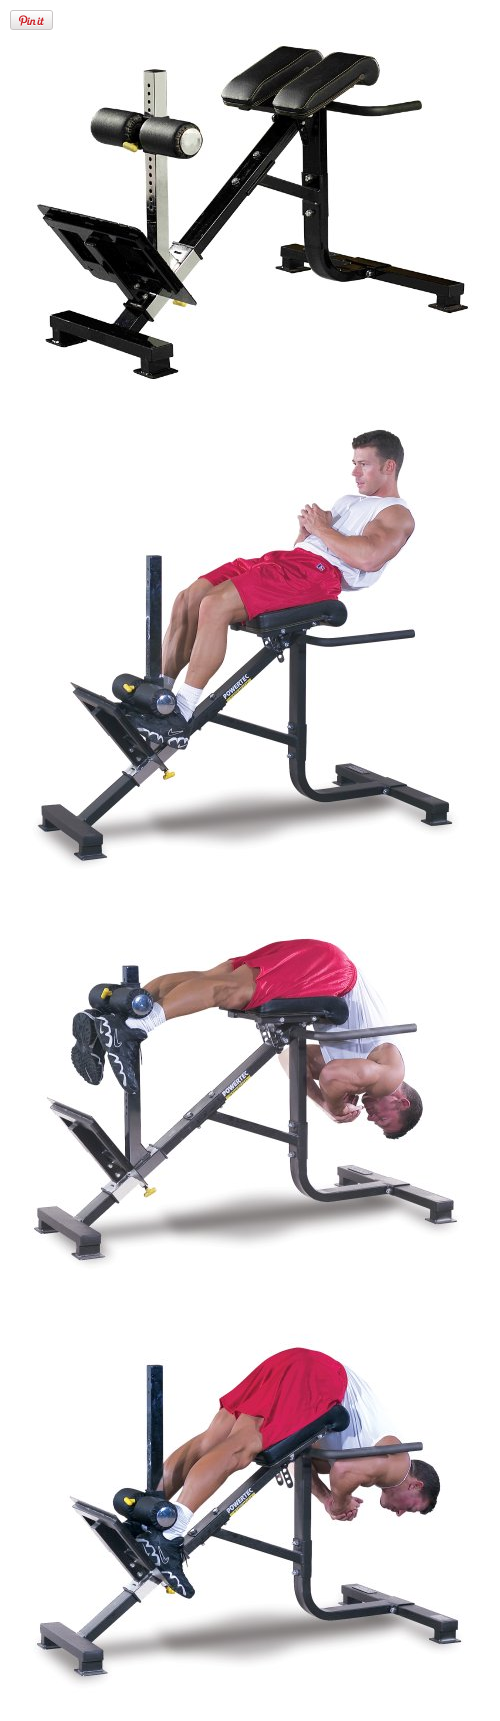 Powertec Fitness P Hc10 45 Degree Dual Hyperextension